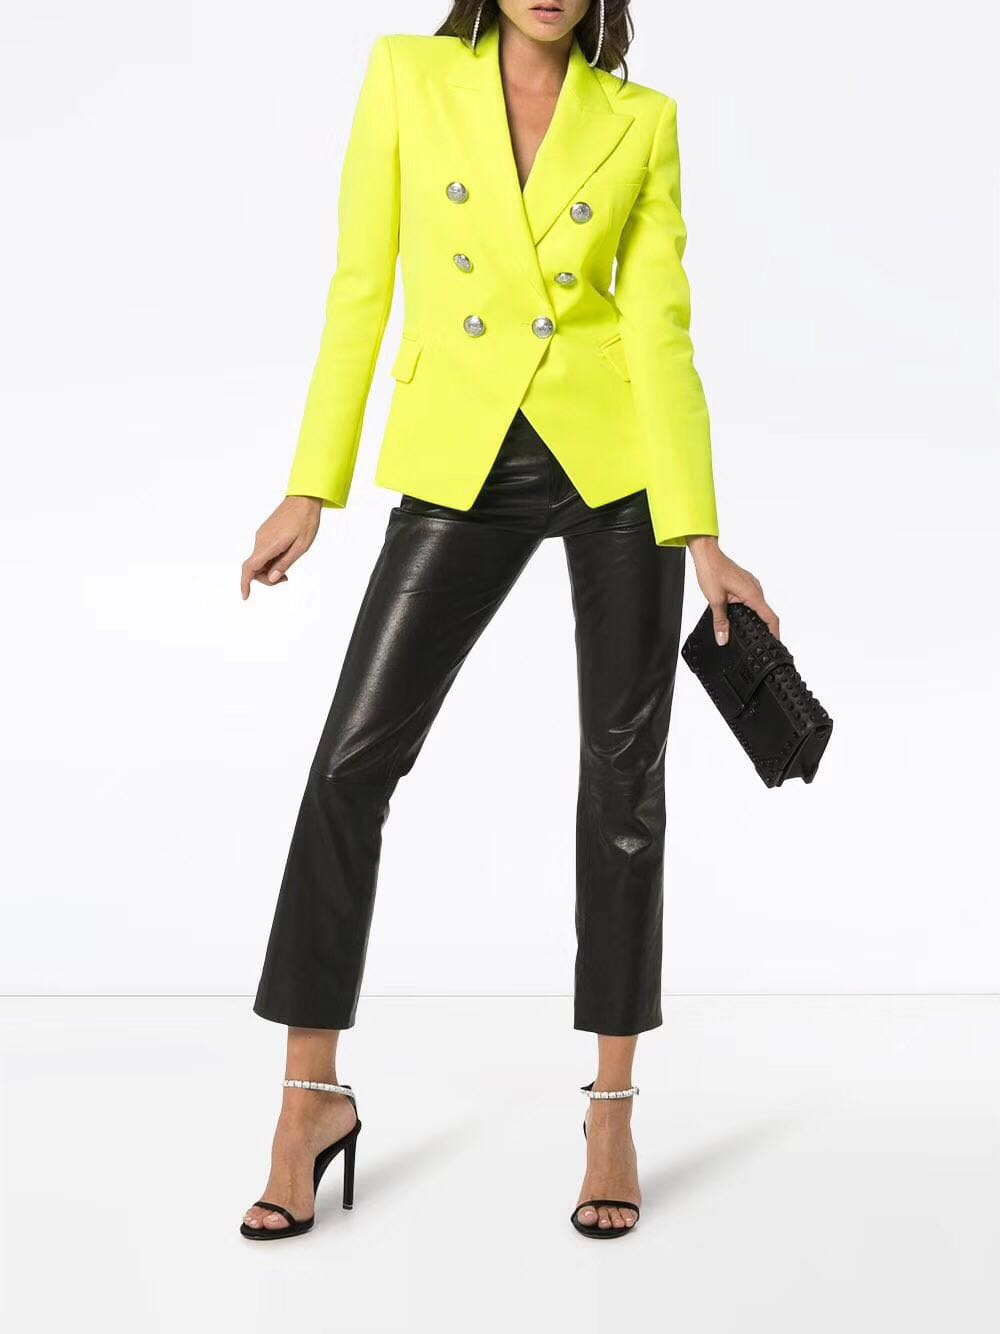 WISHBOP TOP QUALITY Lemon Yellow Solid Color Double Breasted Blazer For Woman 2019ss Limited Color